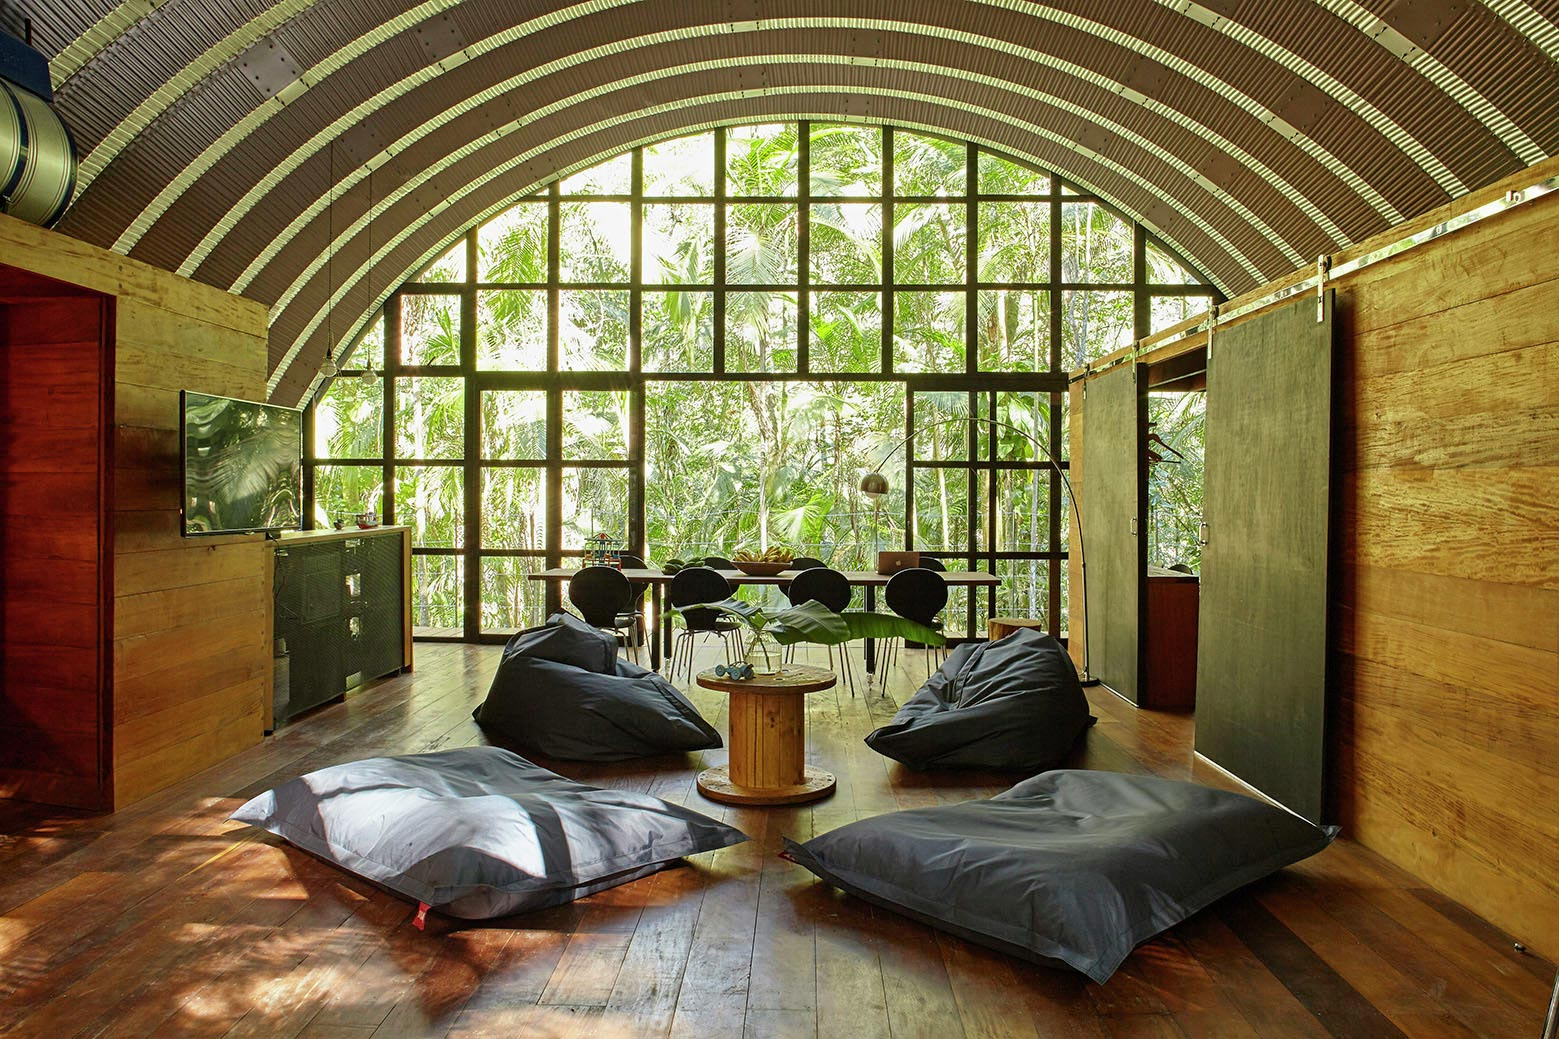 ARCA-home-in-the-middle-of-the-Brazilian-Atlantic-Forest-by-Atelier-Marko-Brajovic-09